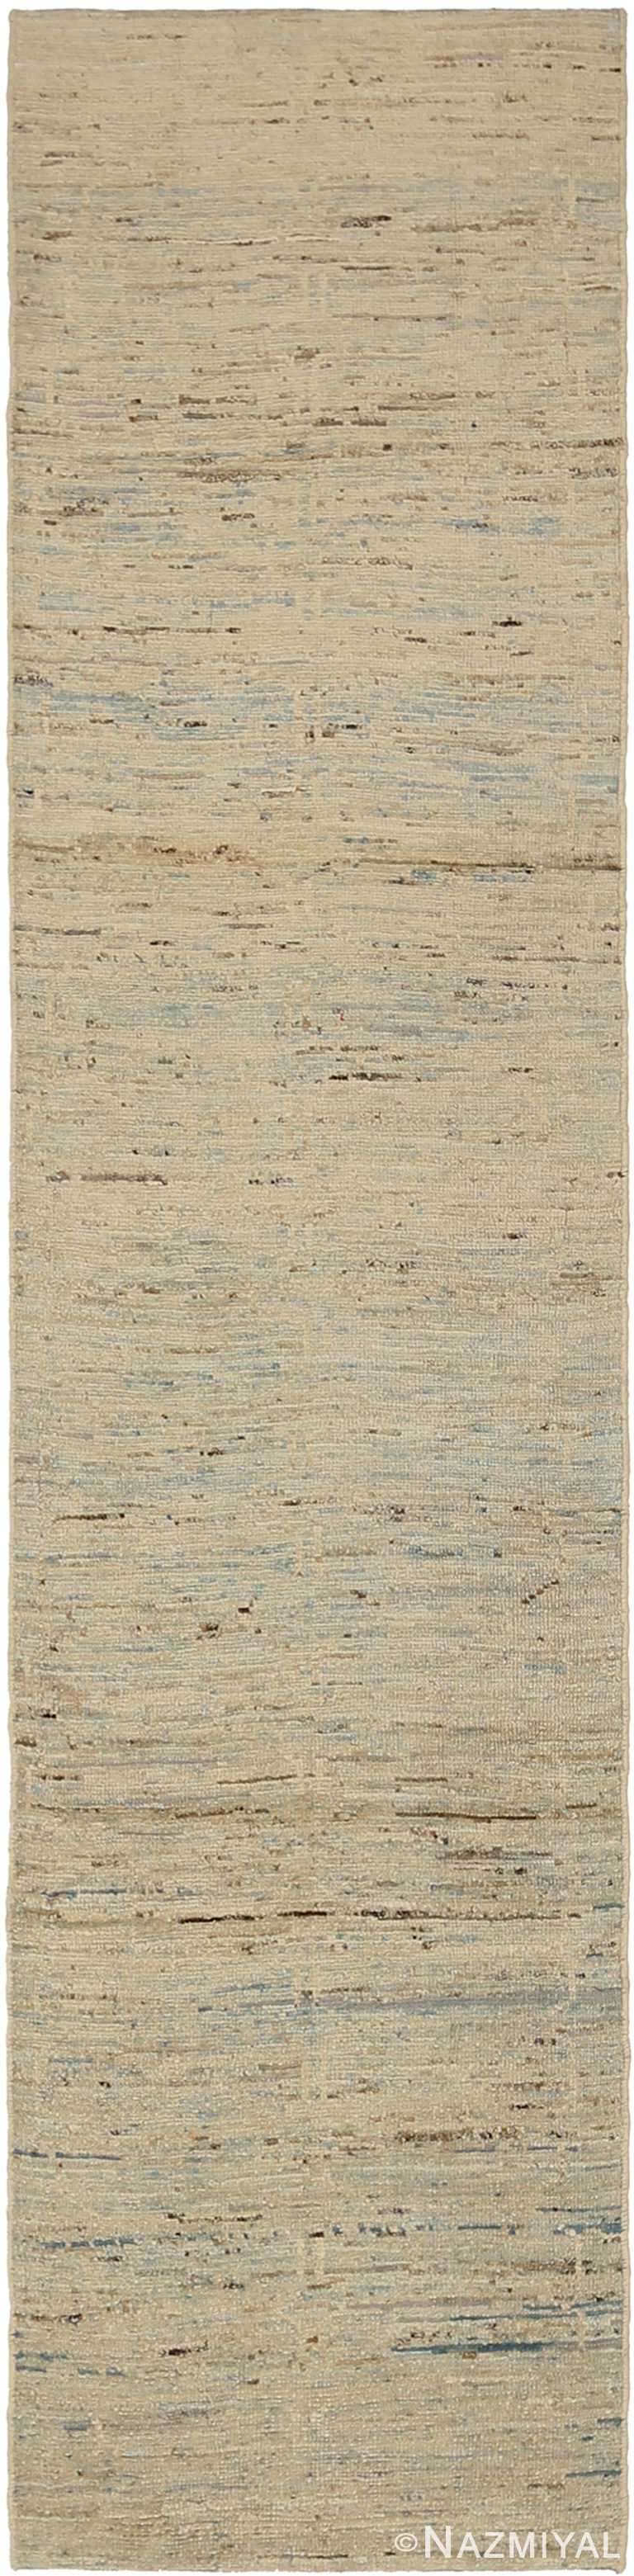 Cream Modern Moroccan Style Runner Rug 60345 by Nazmiyal NYC